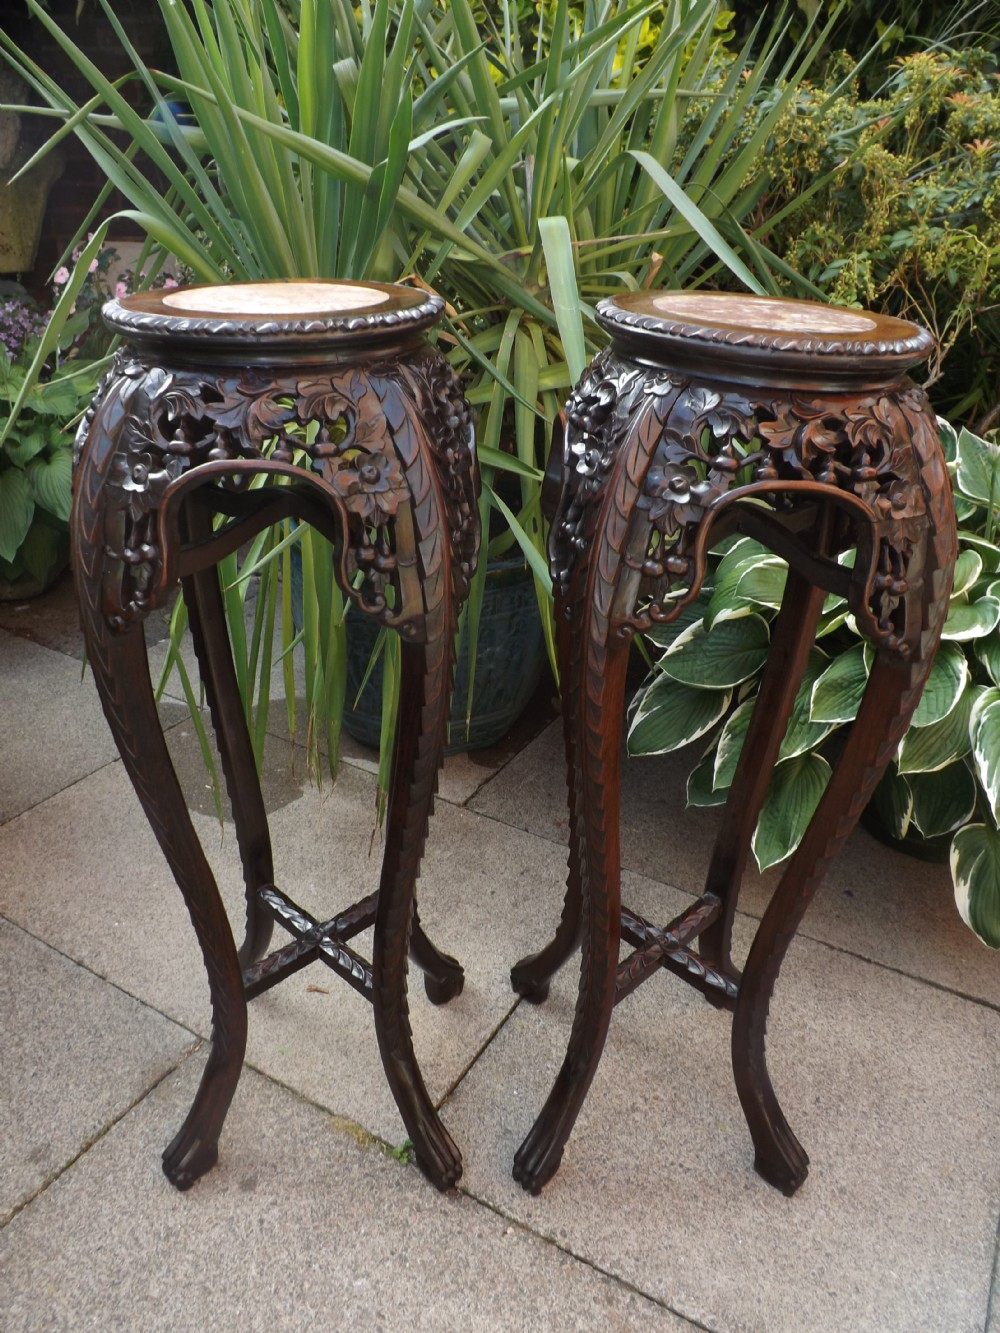 Pair of c19th chinese late qing dynasty carved hardwood inset pair of c19th chinese late qing dynasty carved hardwood inset marbletop jardinire or vase stands reviewsmspy